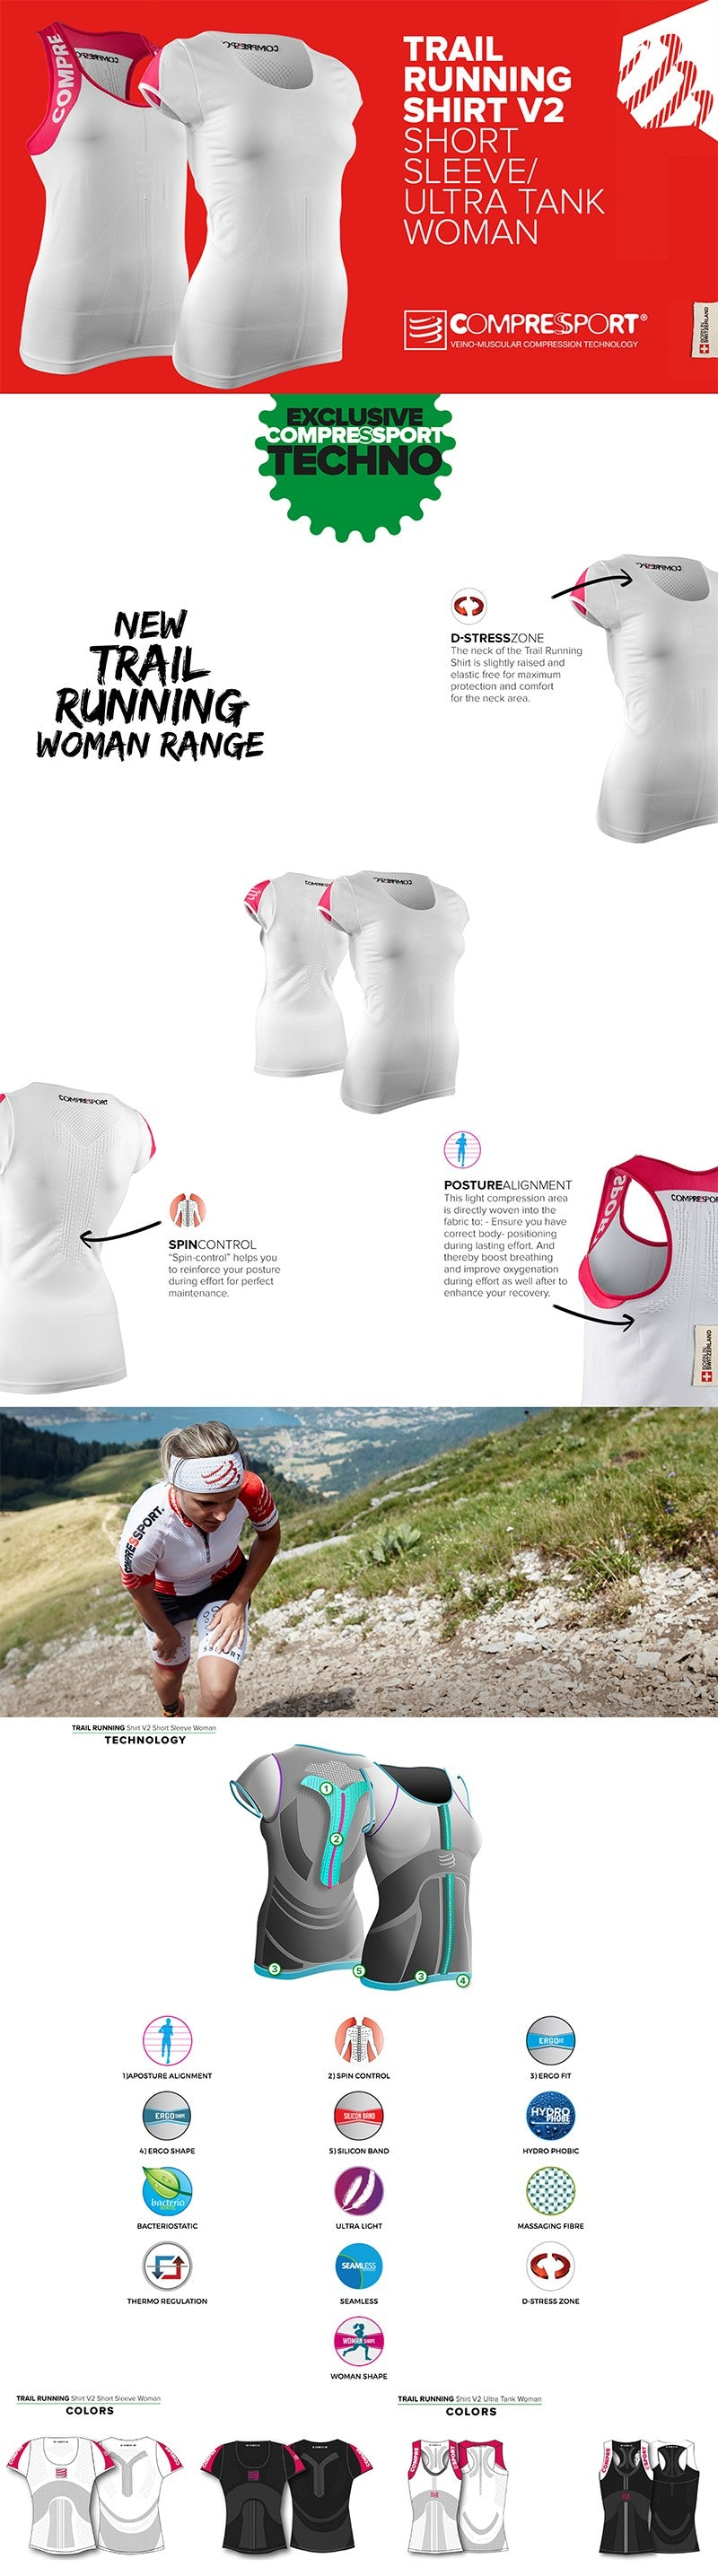 Compressport Woman Trail Running V2 Ultra Tank Top Product Details